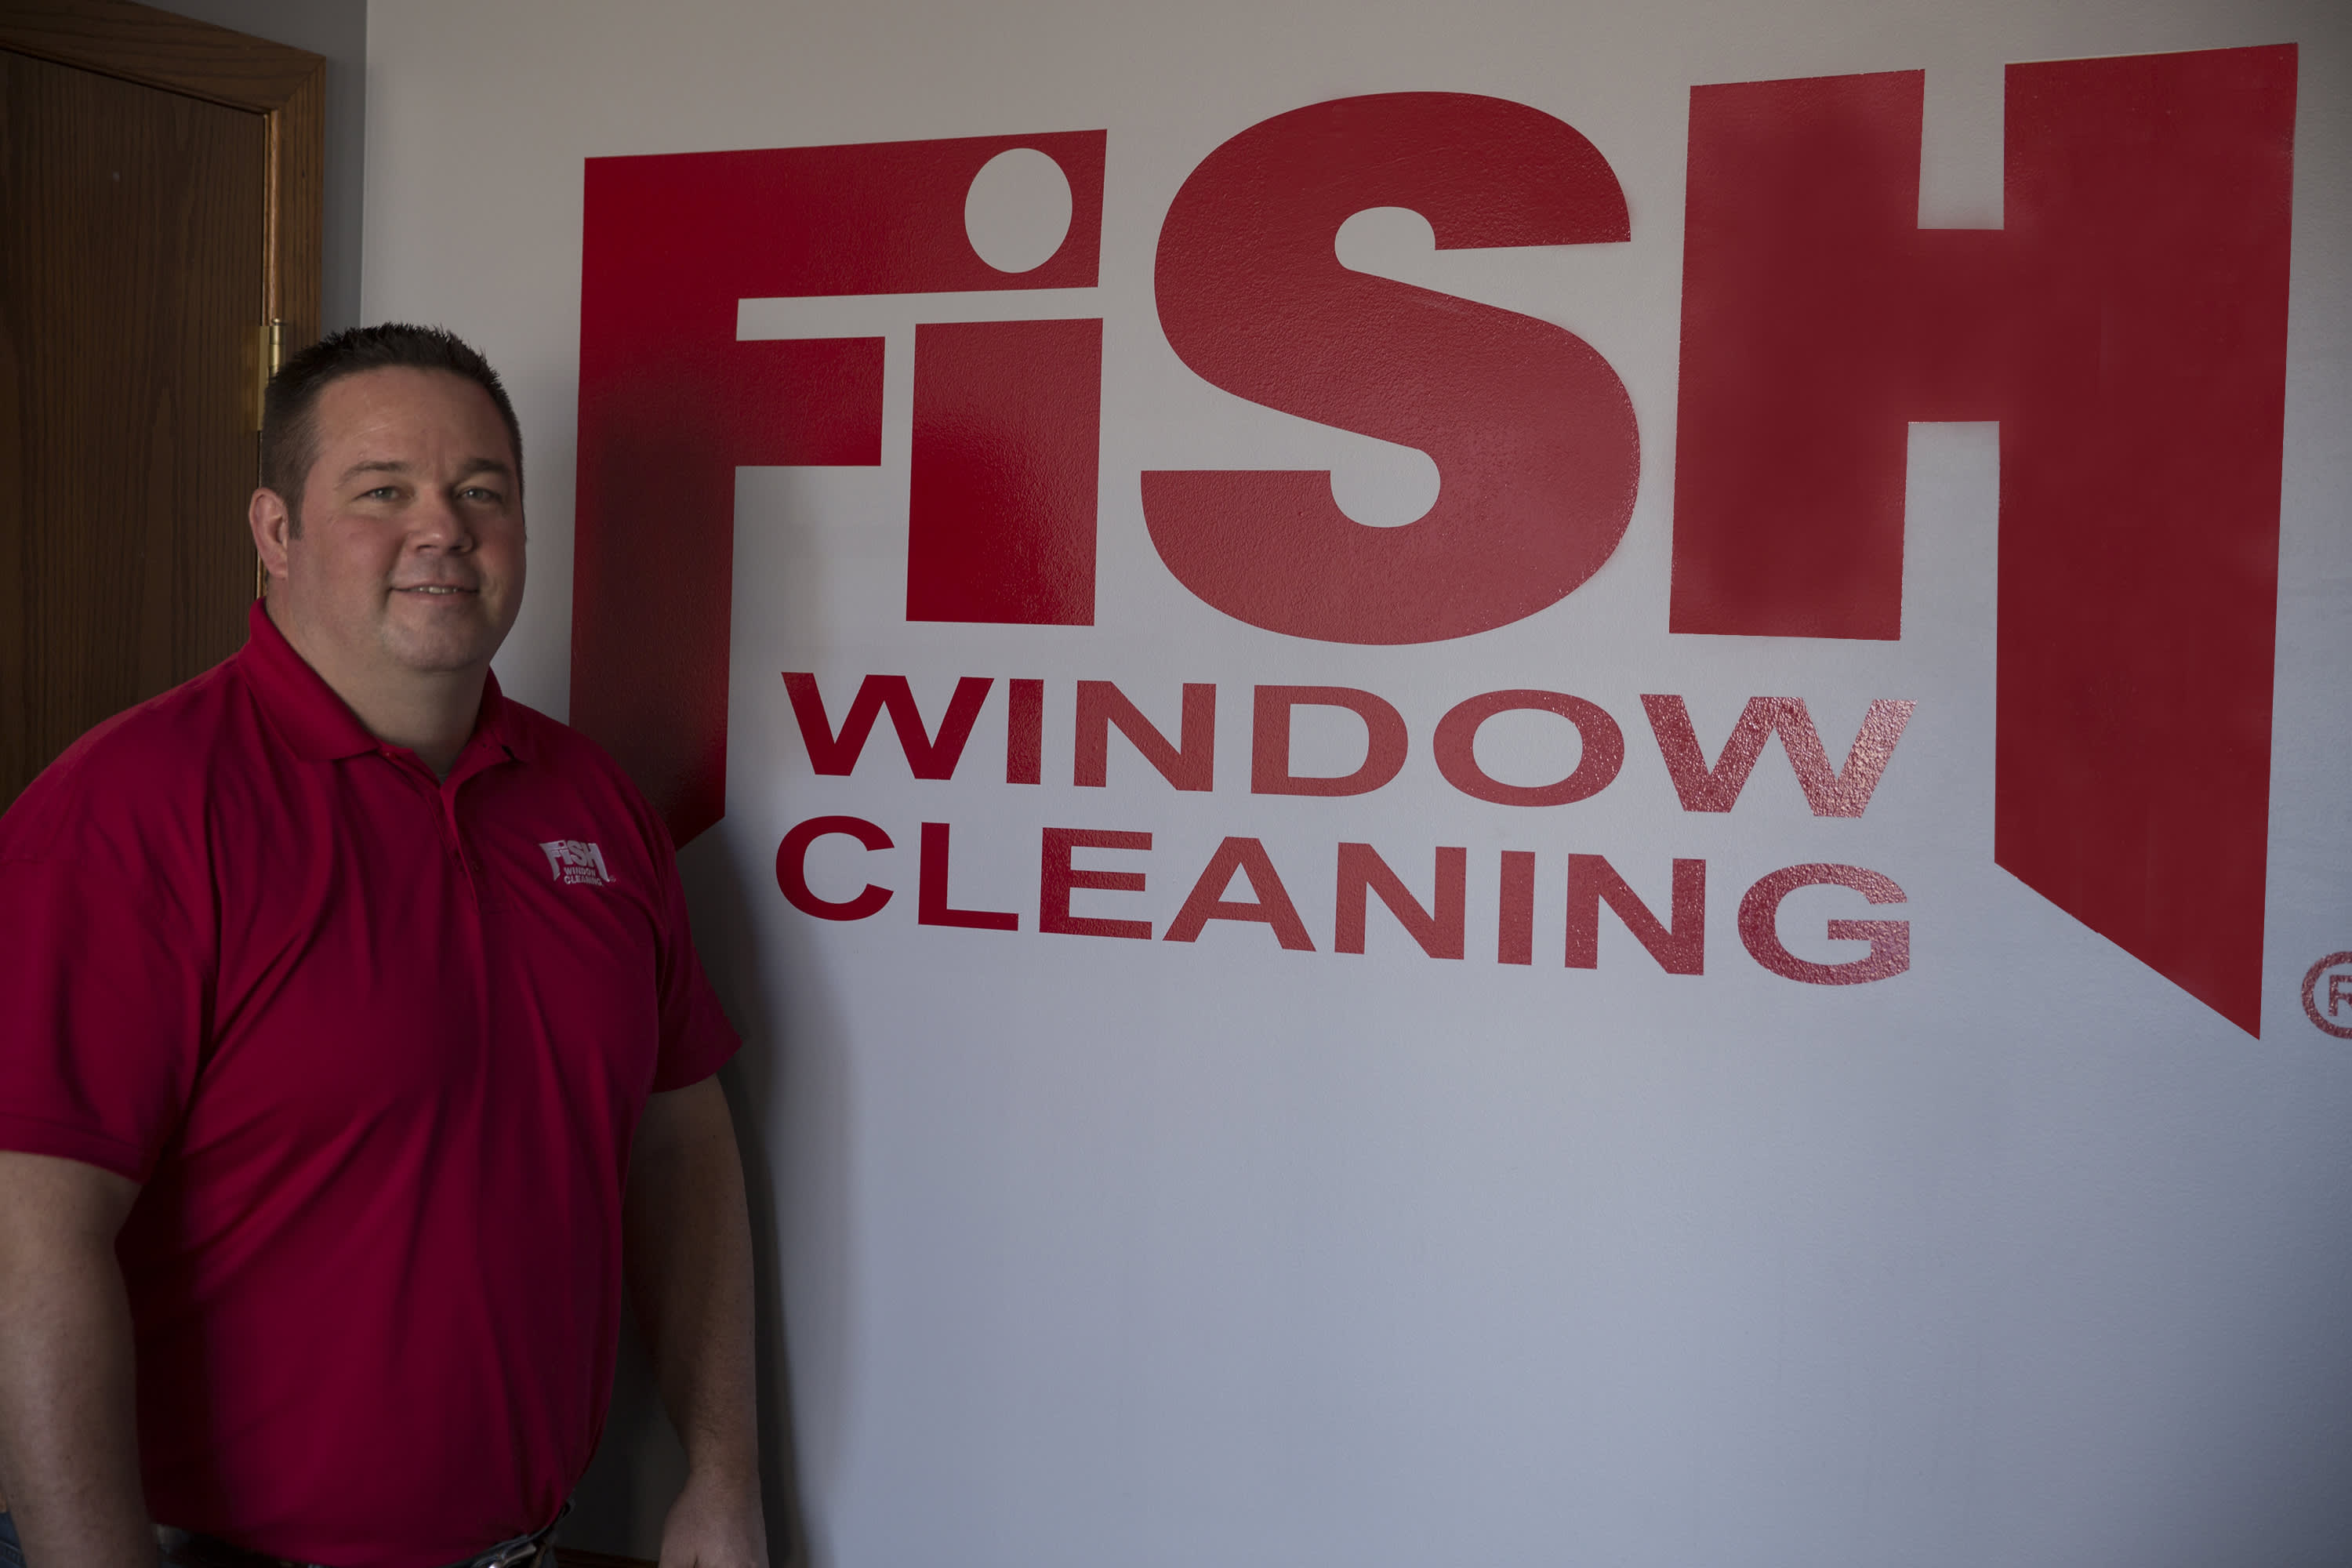 fish window cleaning - Window Cleaner Job Description